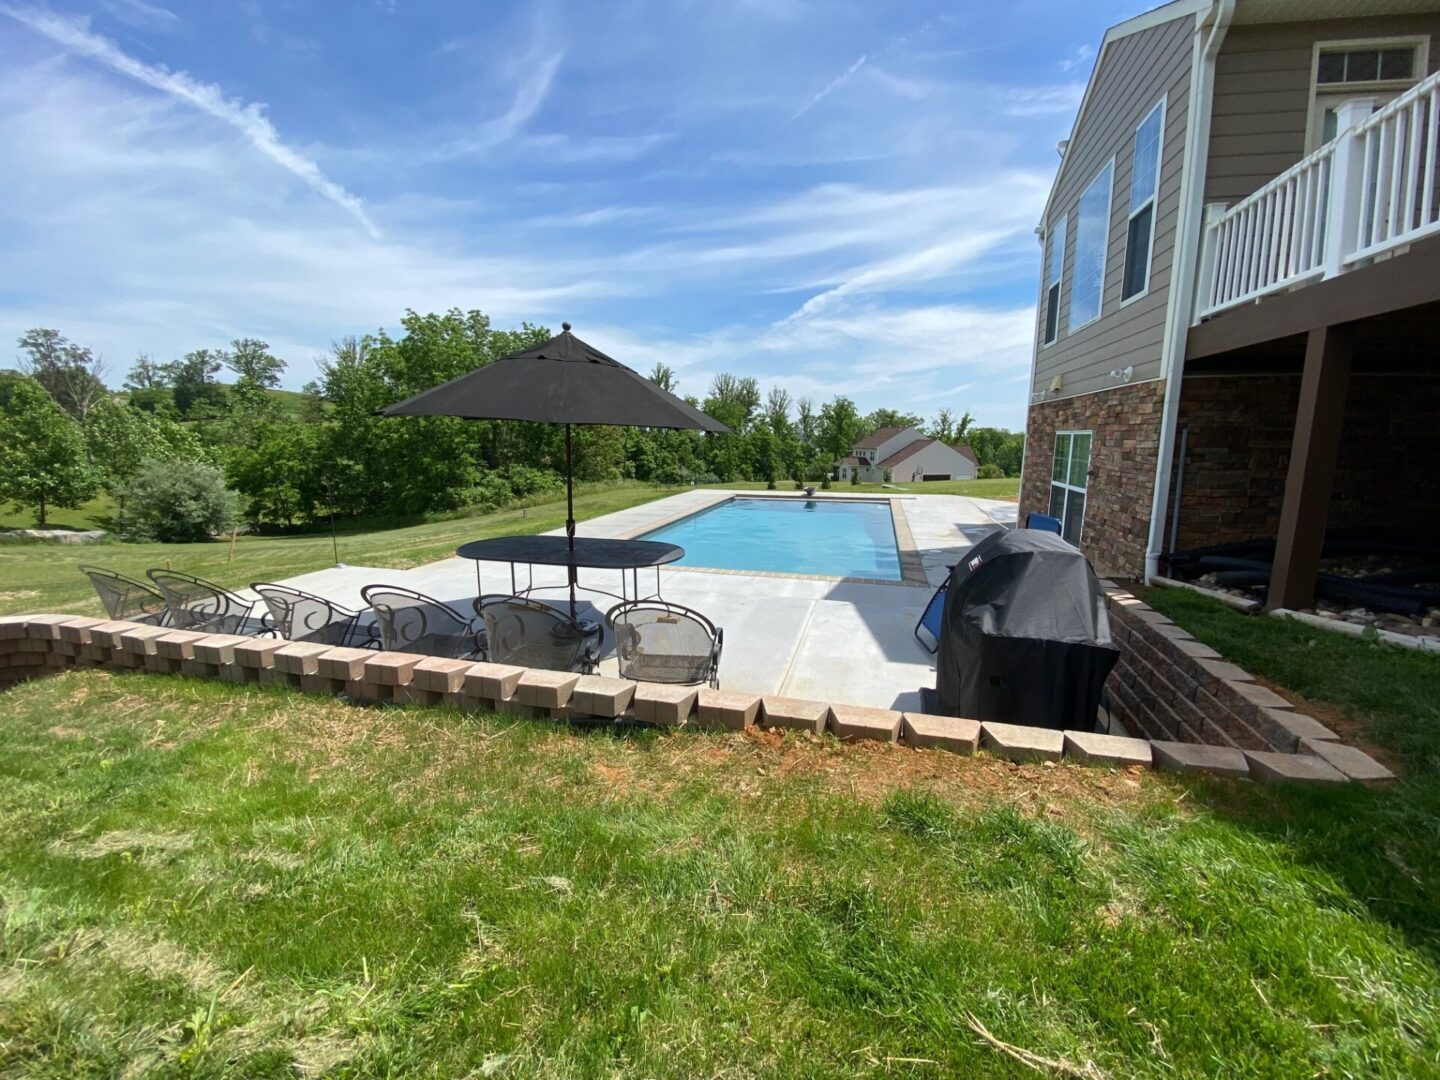 Pool with brushed gray concrete deck